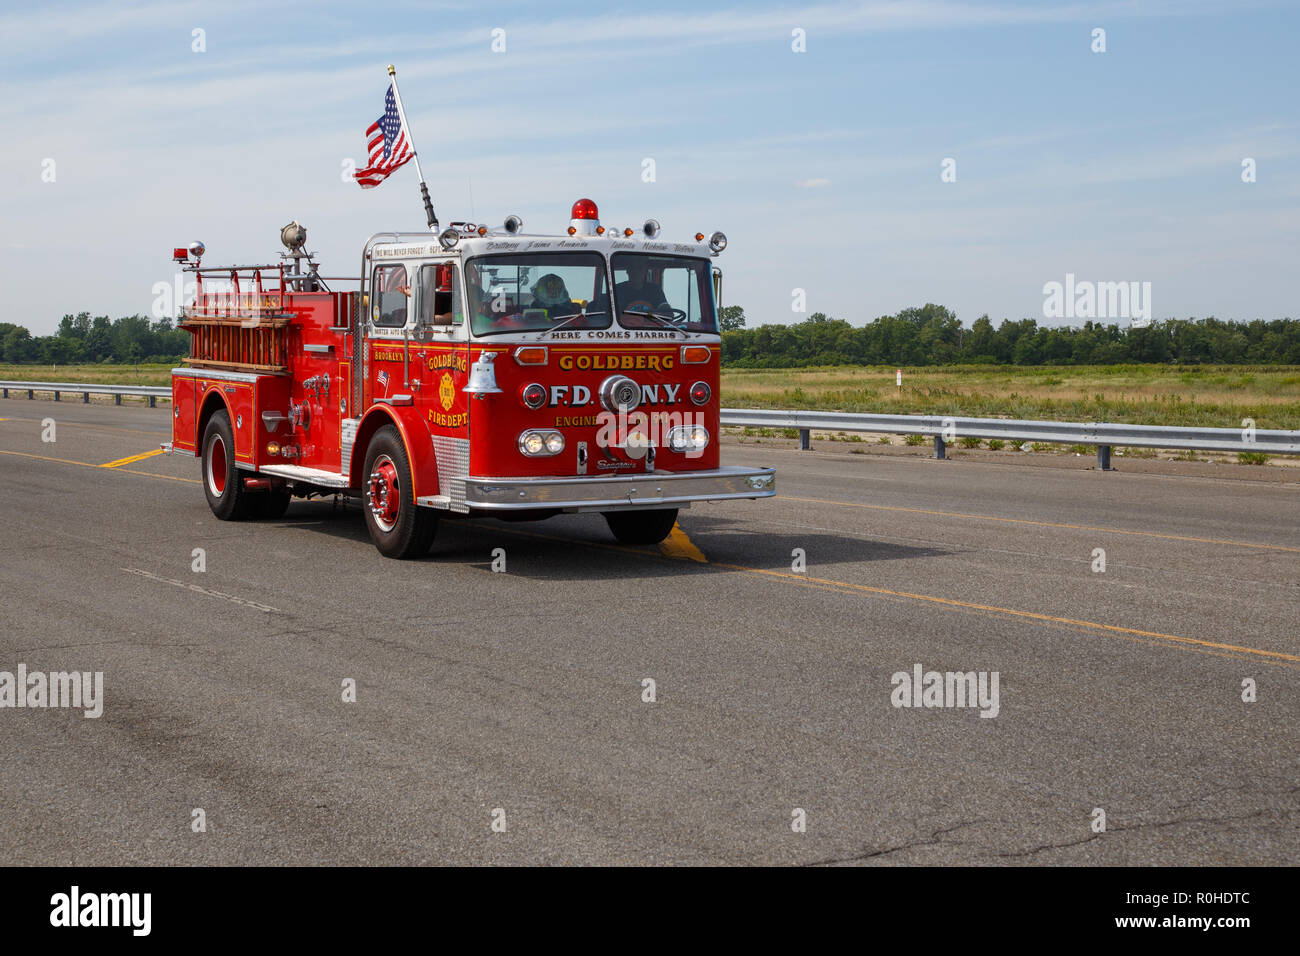 Fire Department Fdny Stock Photos & Fire Department Fdny Stock